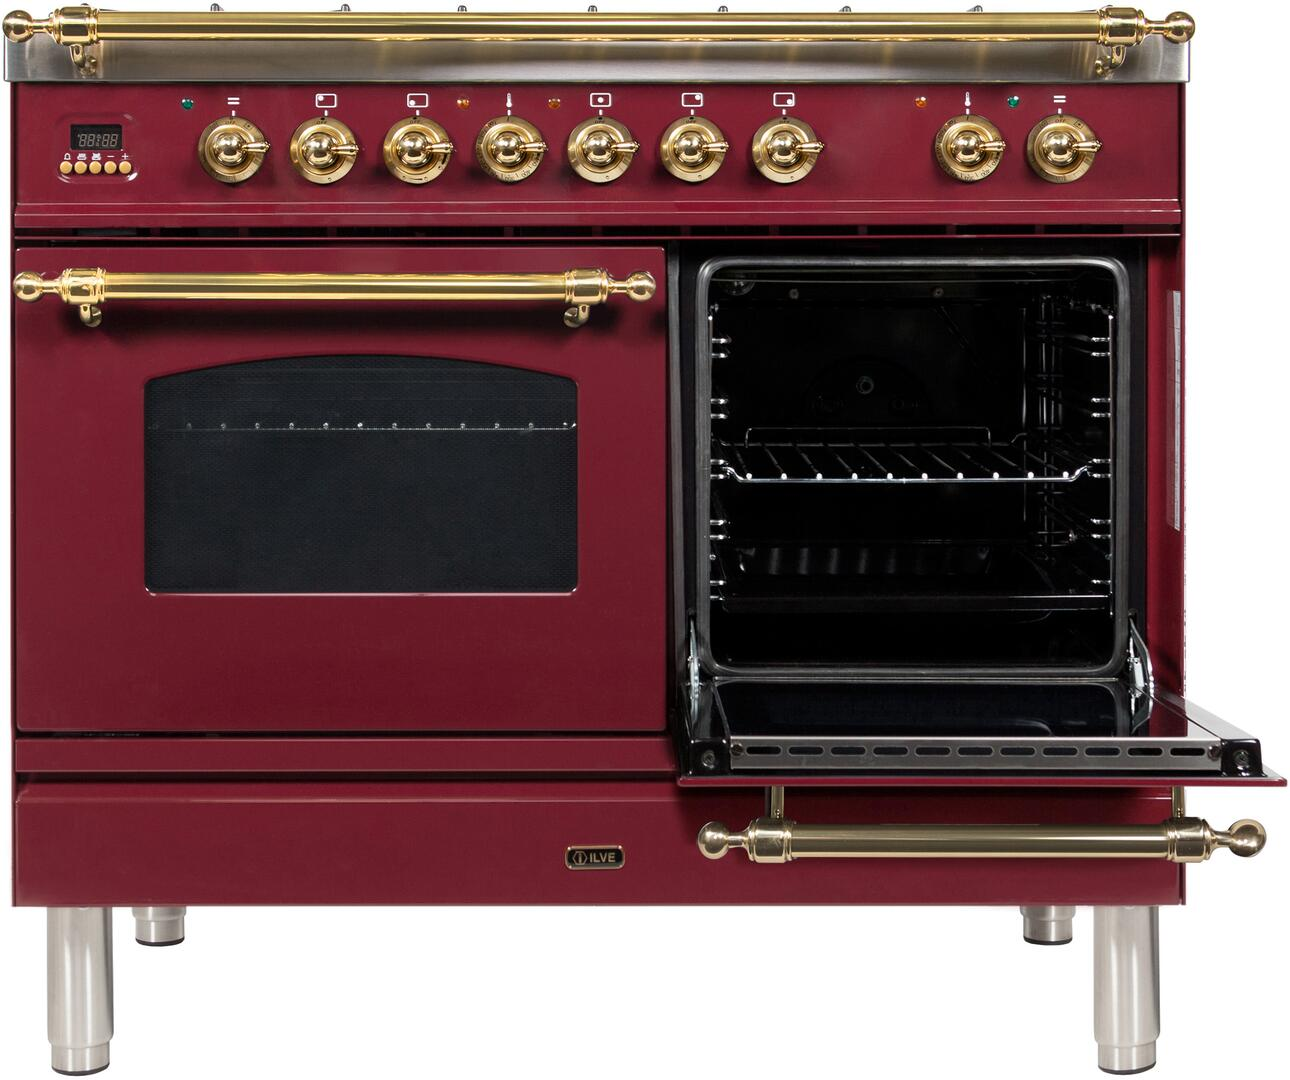 Ilve Nostalgie UPDN100FDMPRBLP Freestanding Dual Fuel Range Red, ilve  UPDN100FDMPRB  range opened right door